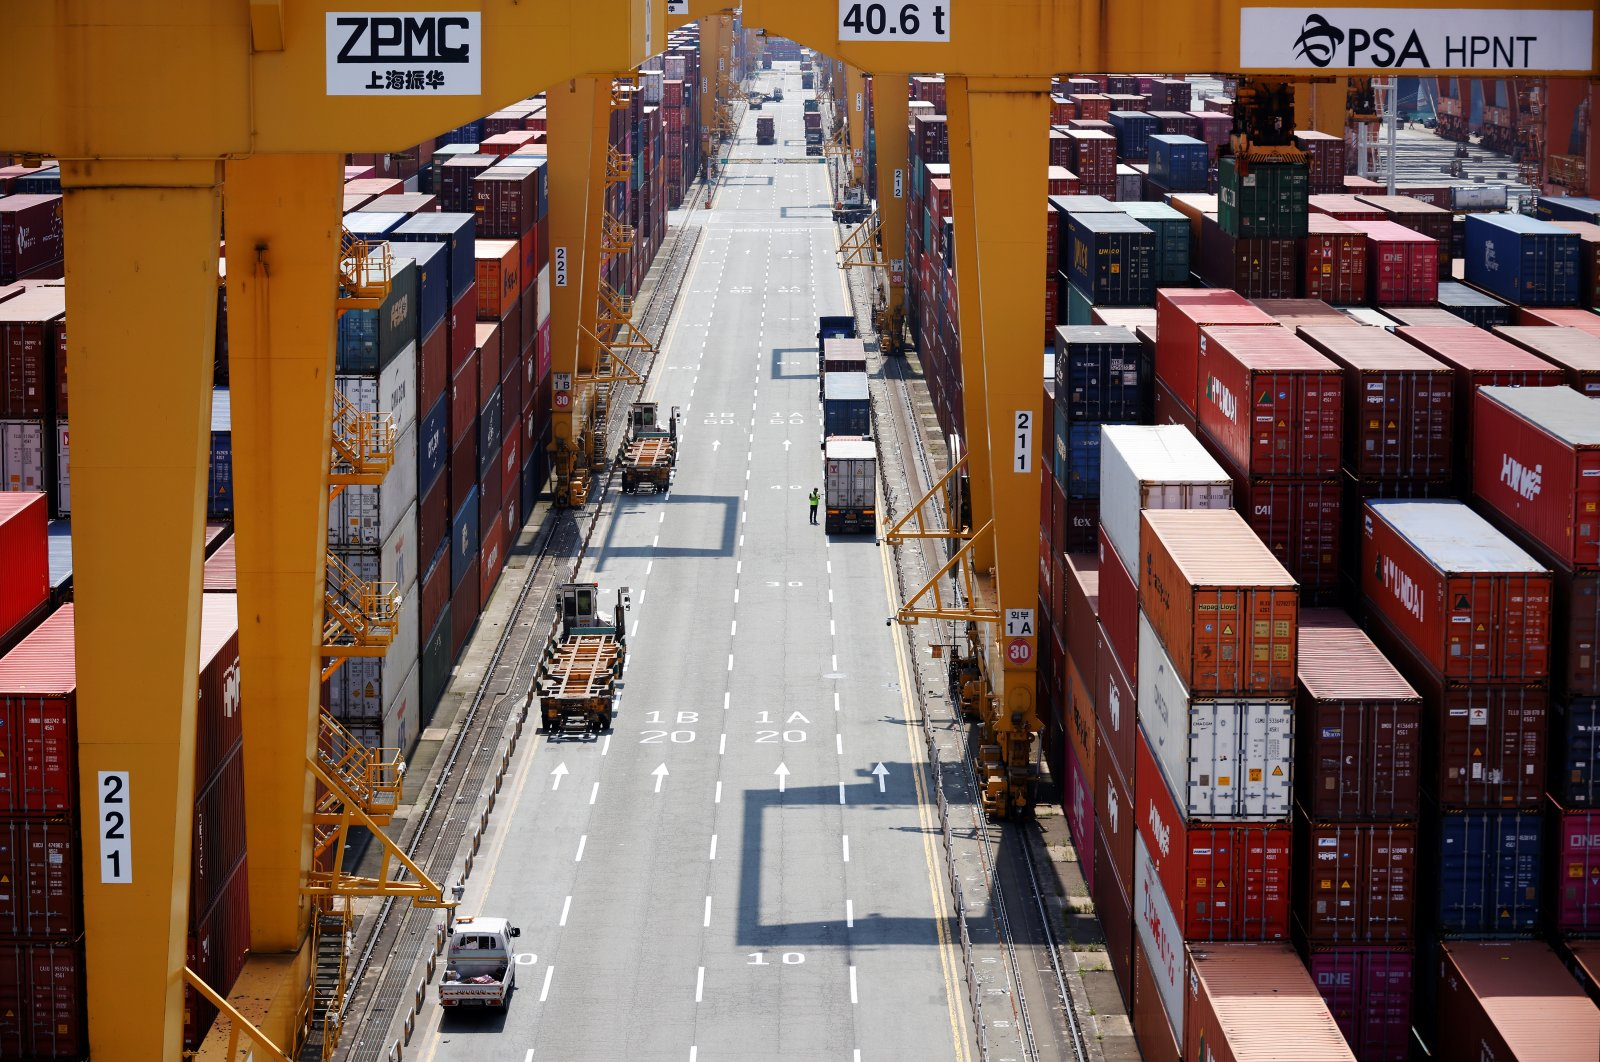 A truck driver stands next to his truck as he gets ready to transport a shipping container at Pusan Newport Terminal in Busan, South Korea, July 1, 2021. (Reuters Photo)